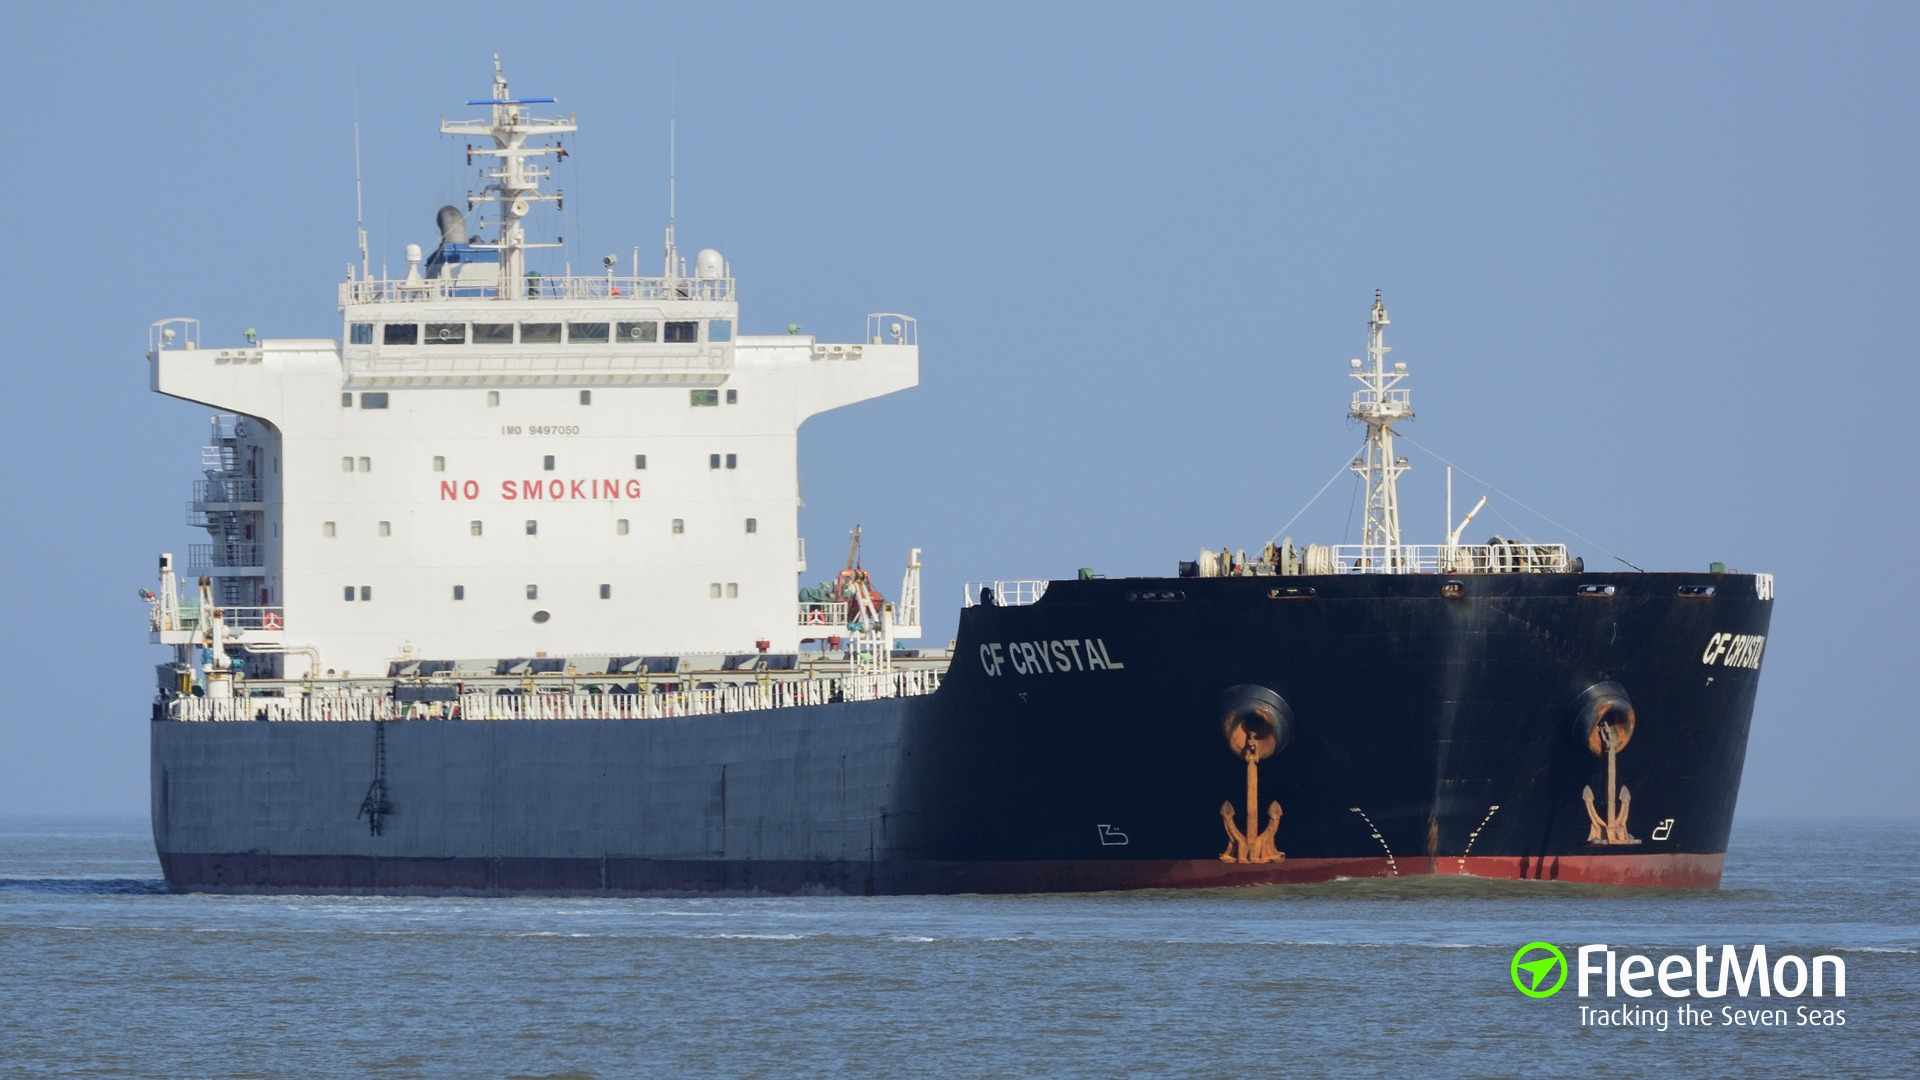 Bulk carrier CF Crystal man overboard